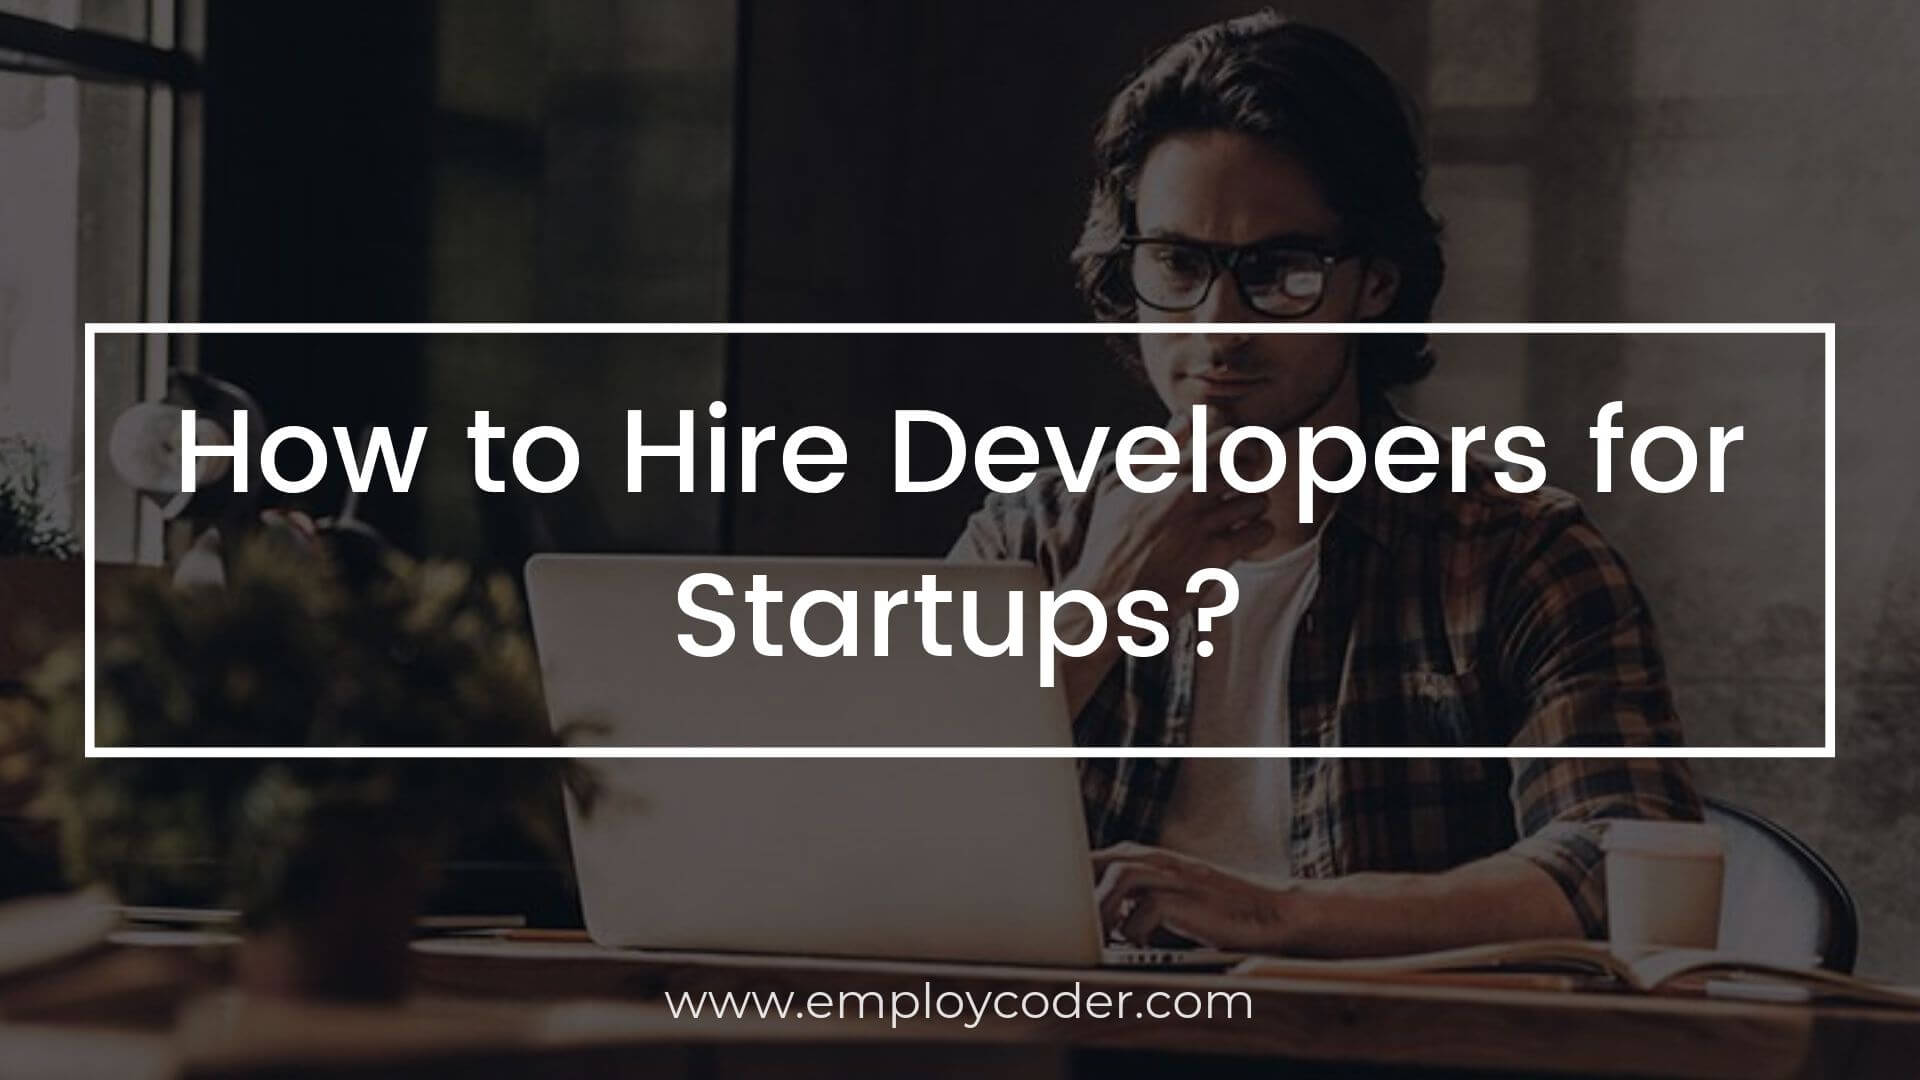 How to Hire Developers for Startups?